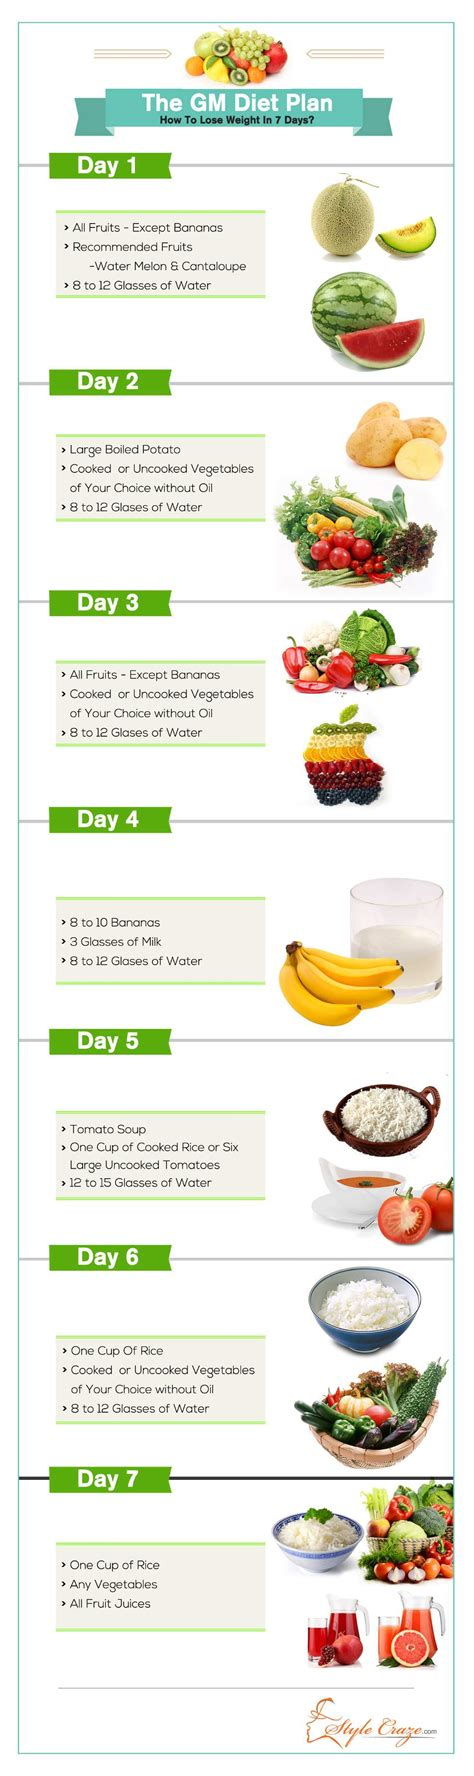 Indian Veg Detox Diet Plan by Gm Diet Lose Weight In 7 Days Heavy